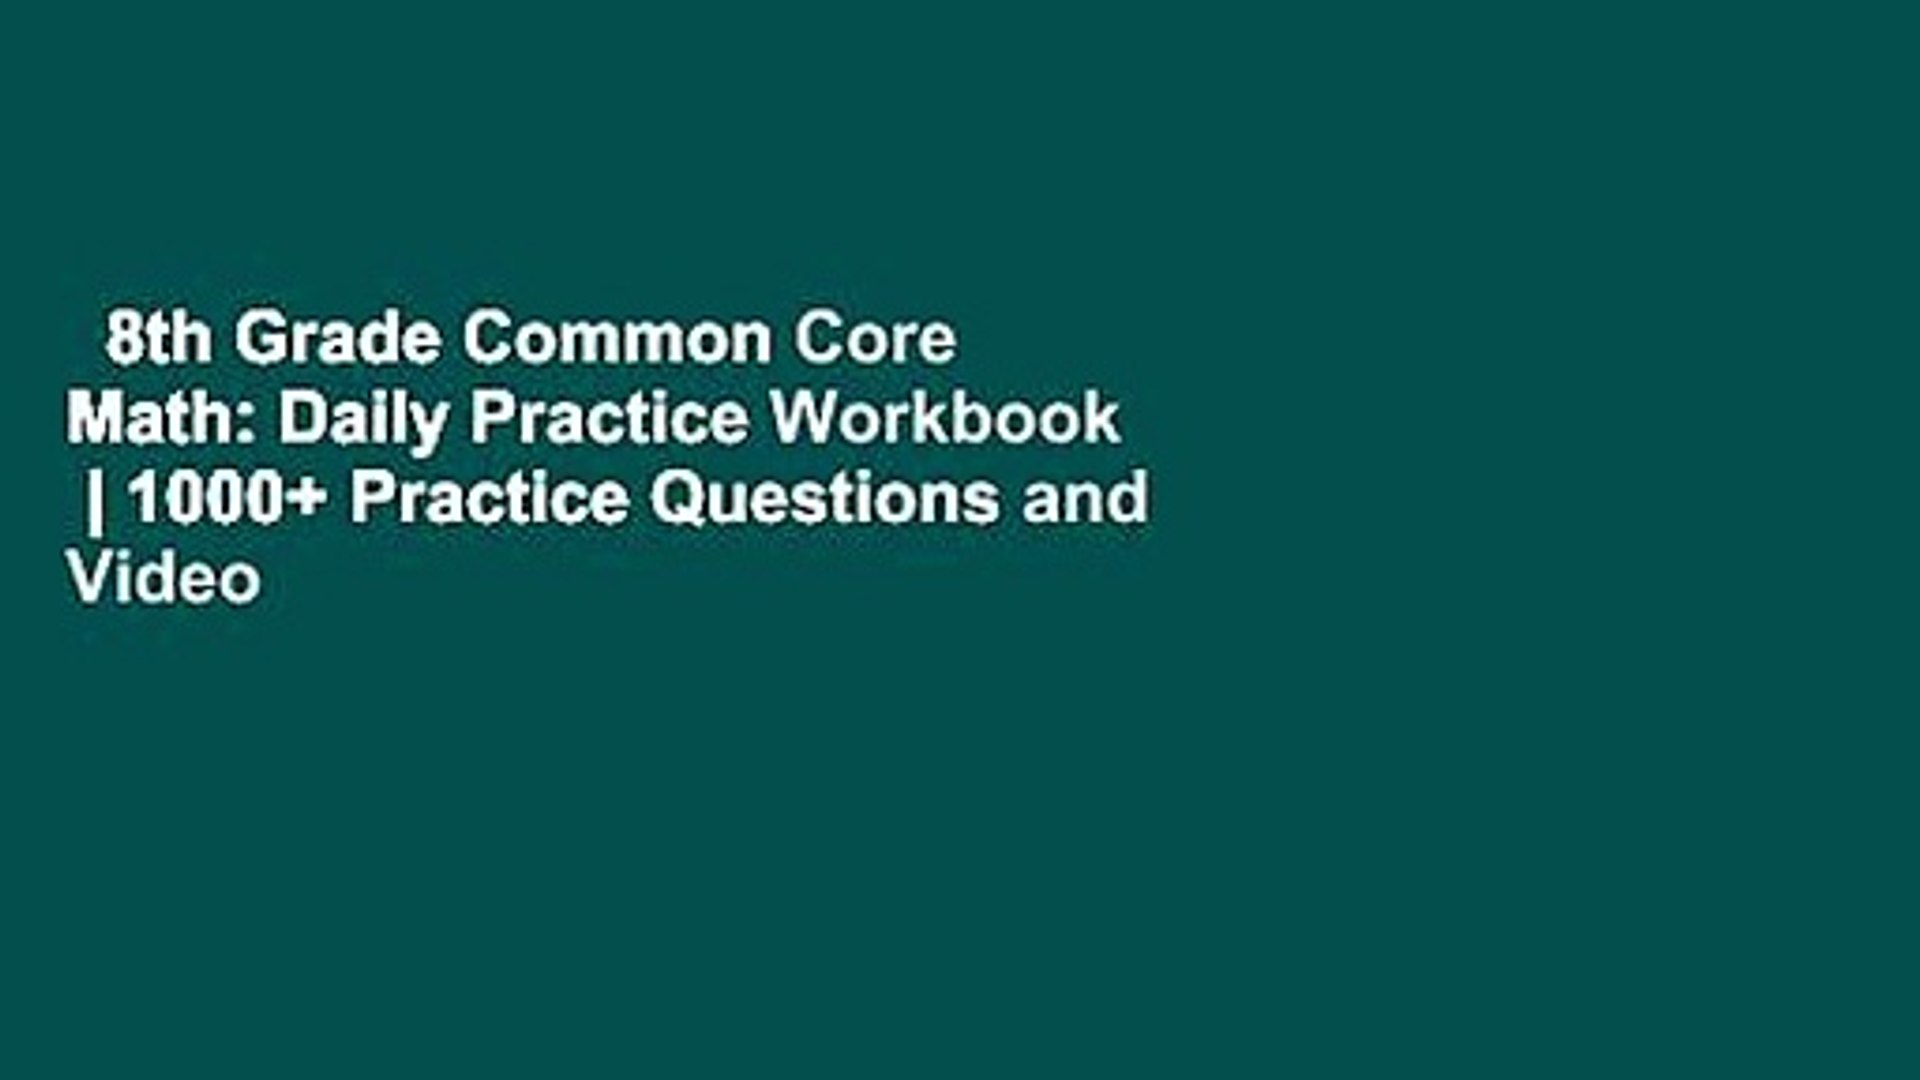 8th Grade Common Core Math: Daily Practice Workbook   1000+ Practice  Questions and Video